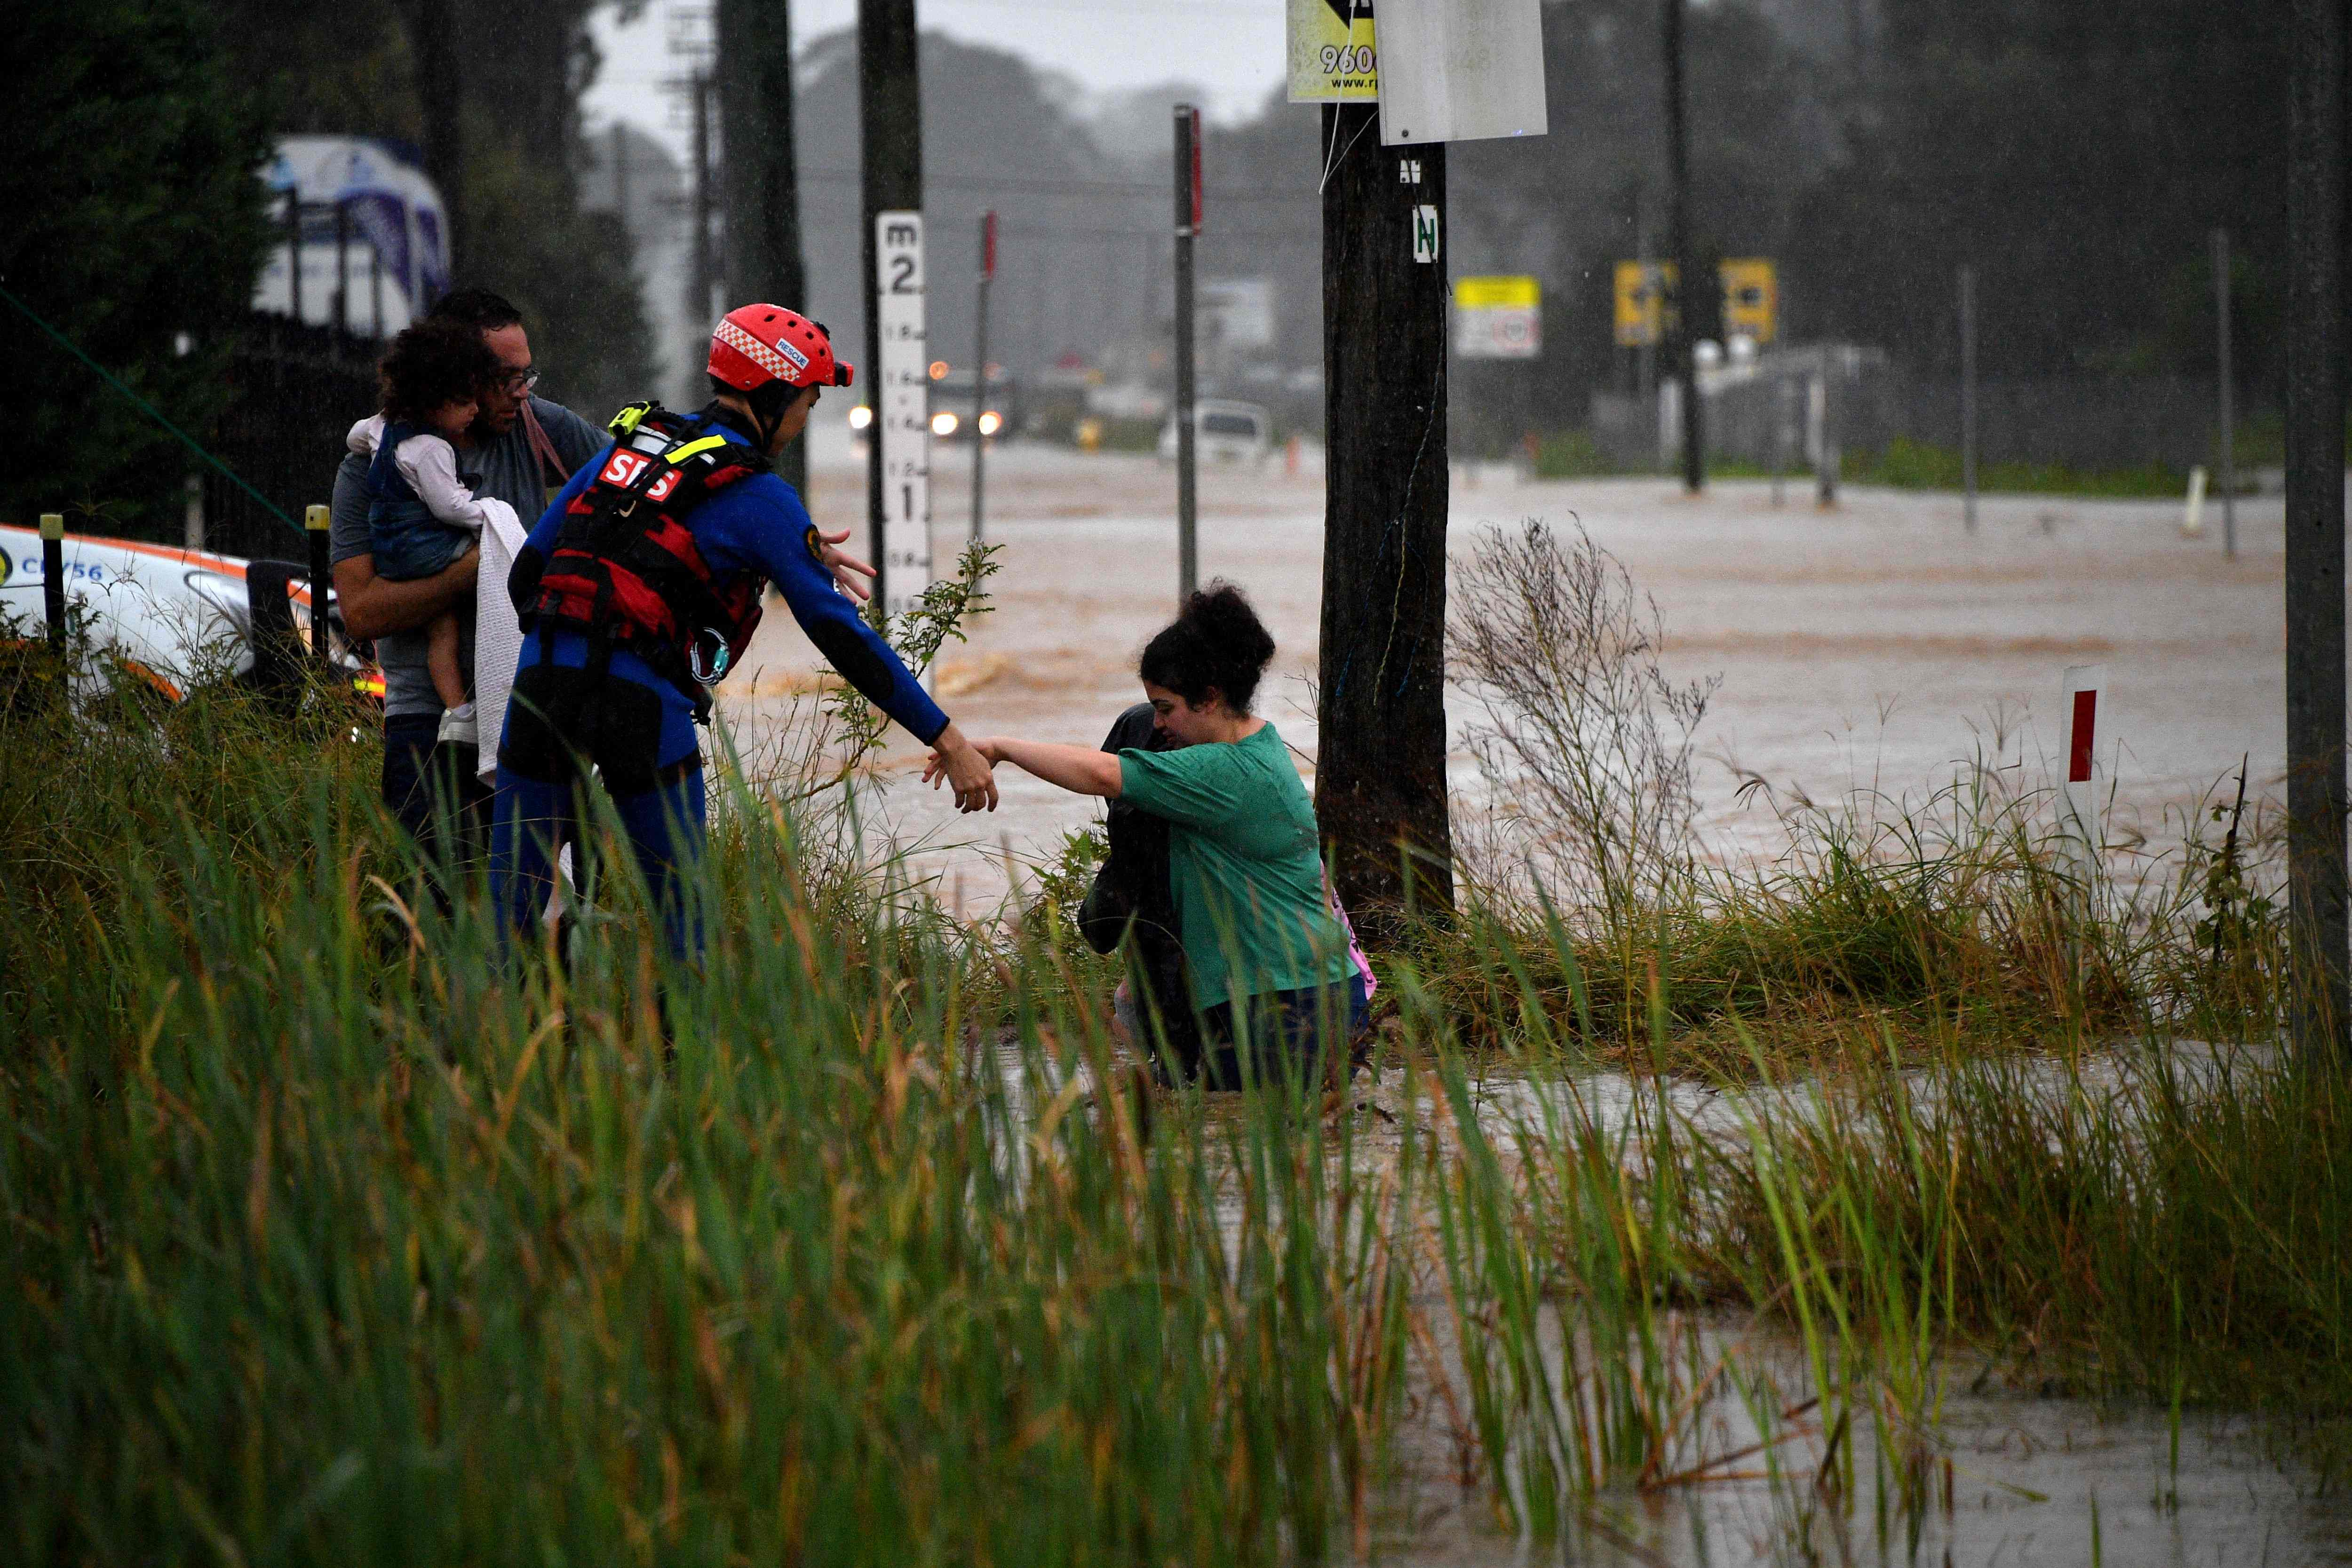 A rescue worker helps residents cross a flooded road during heavy rain in western Sydney.(AFP)